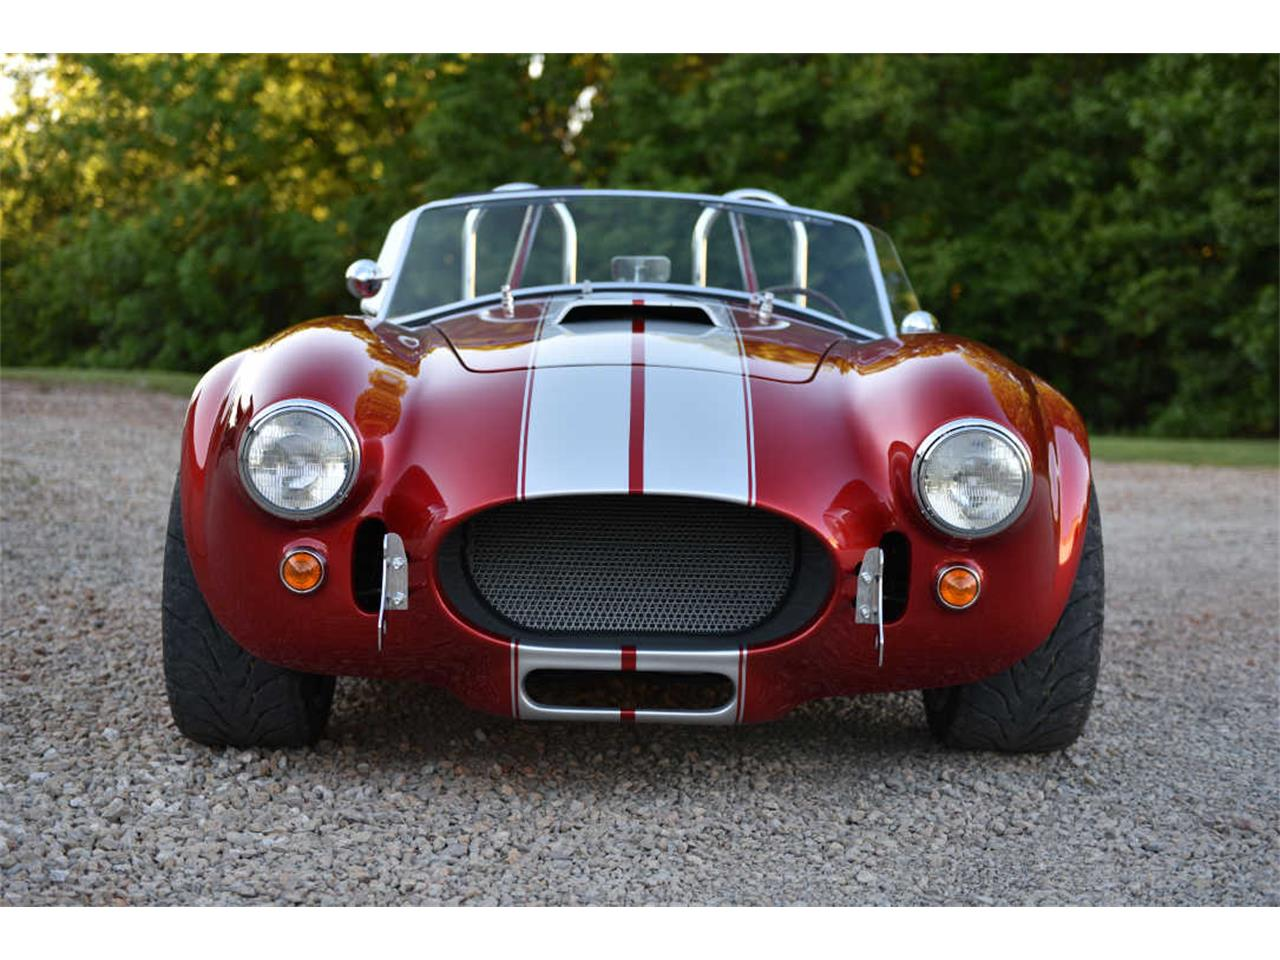 Factory Five Cobra For Sale >> 1965 Factory Five Cobra For Sale In Wellston Ok